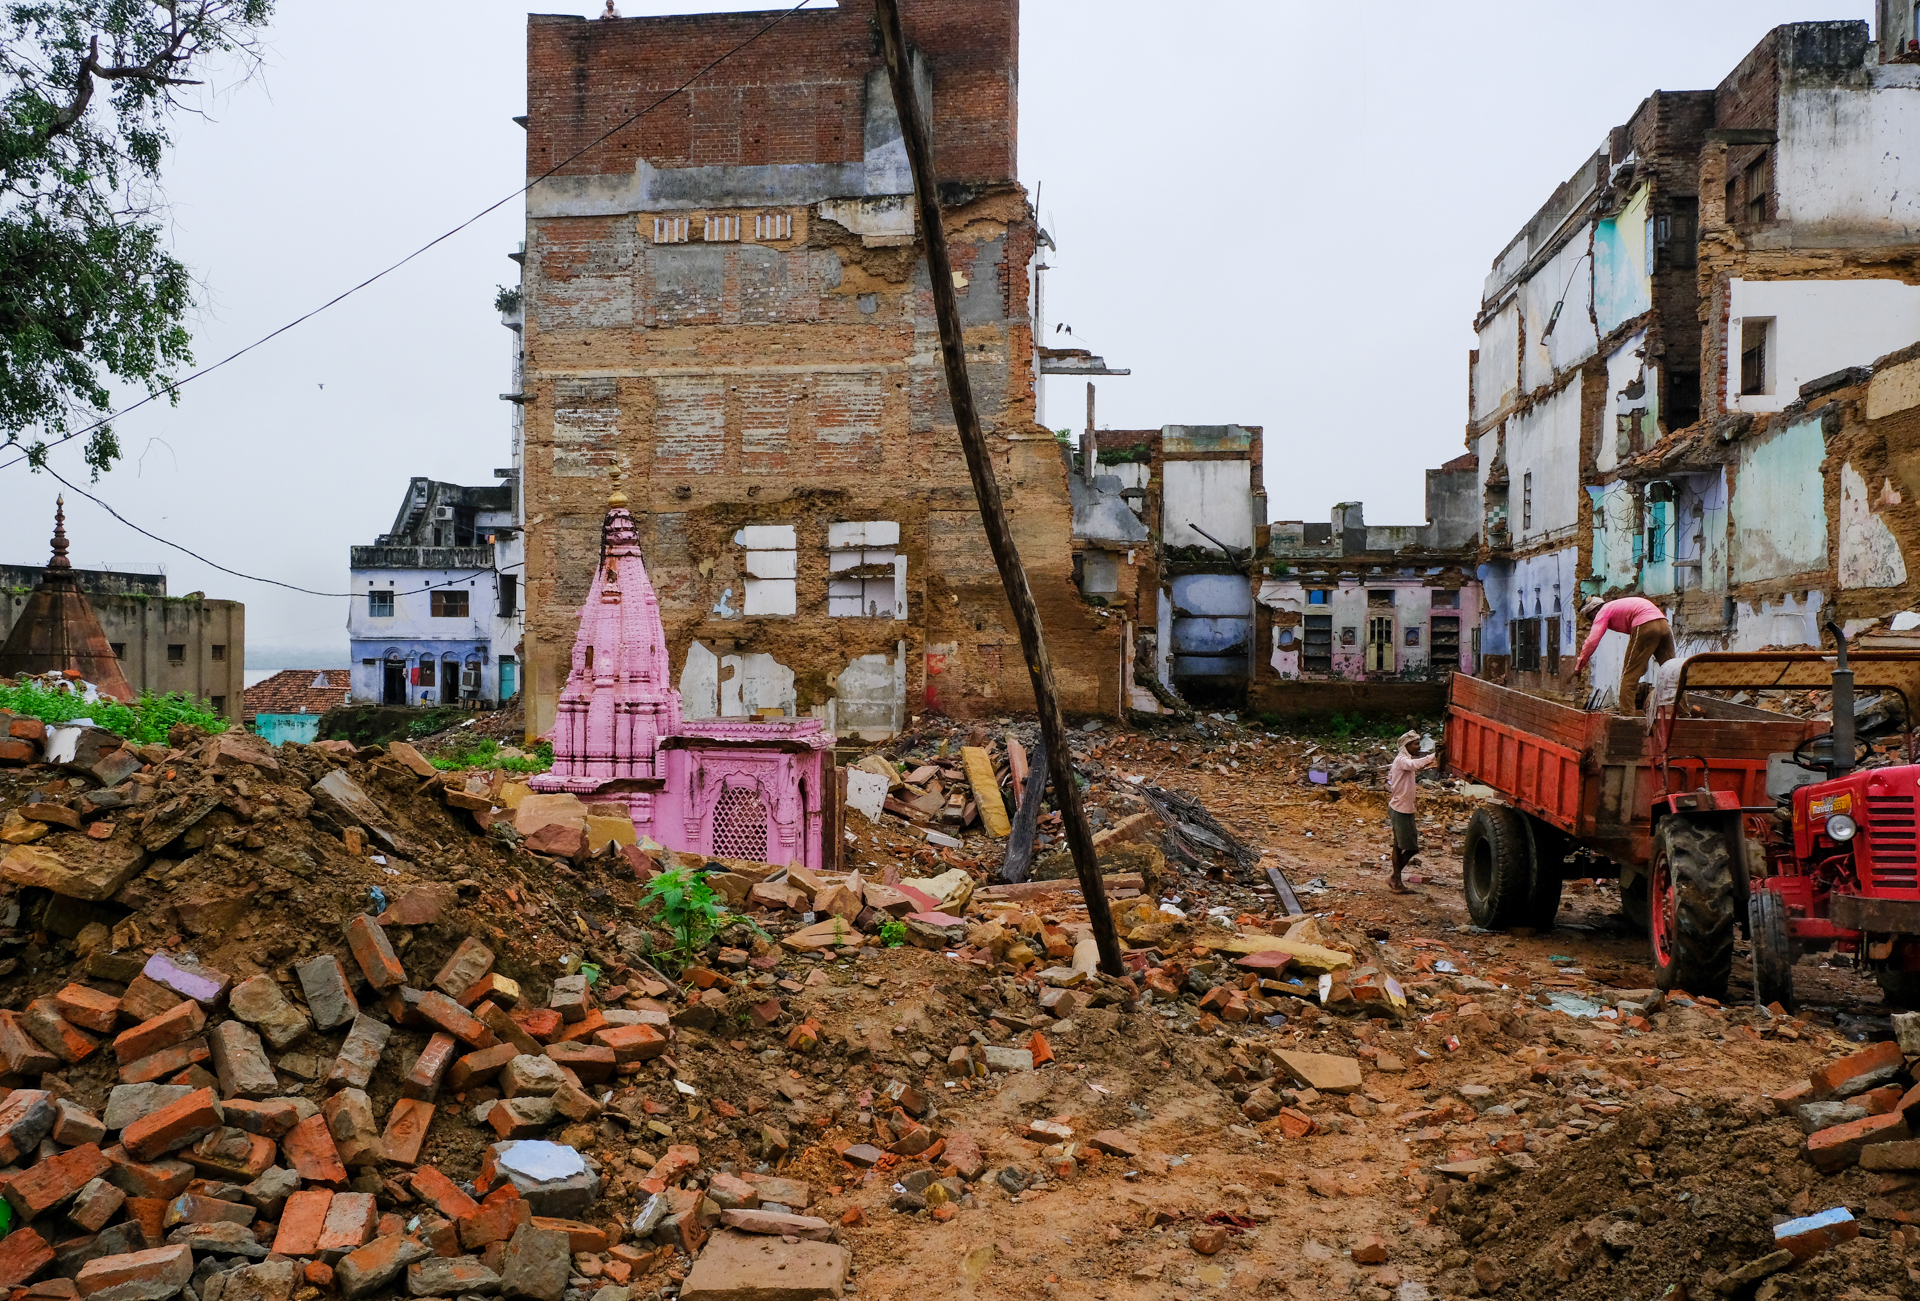 Revealed - a tiny pink temple that had been hidden for hundreds and hundreds of years.